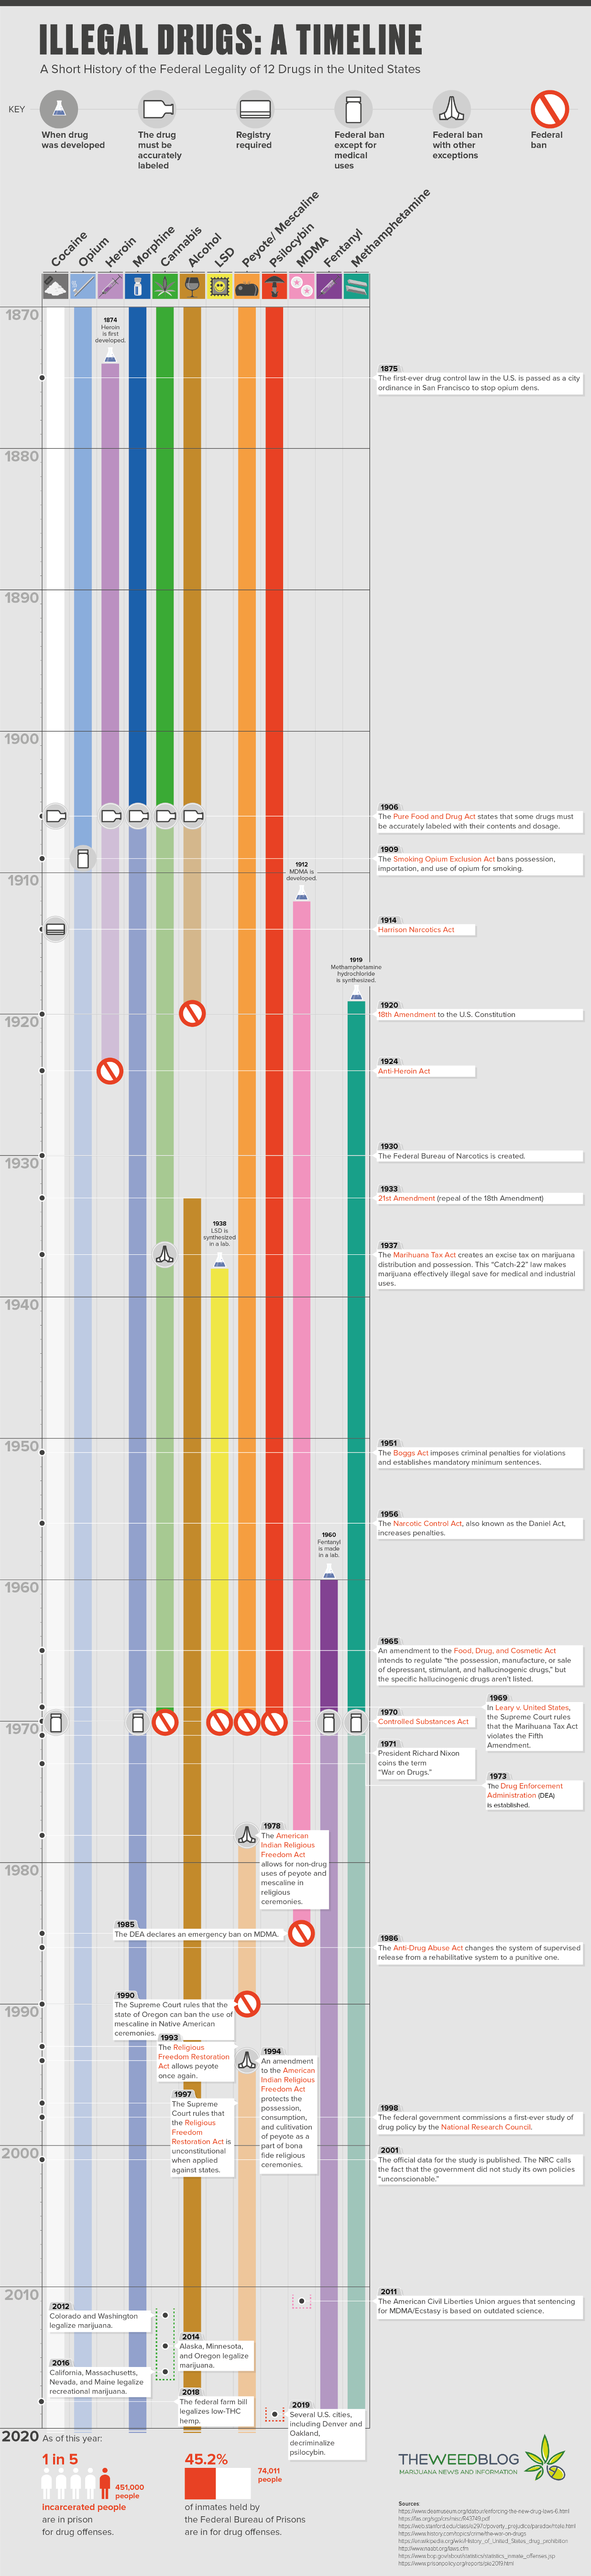 Illegal Drugs: a Timeline - a Short History of the Federal Legality of 12 Drugs in the United States #infographic